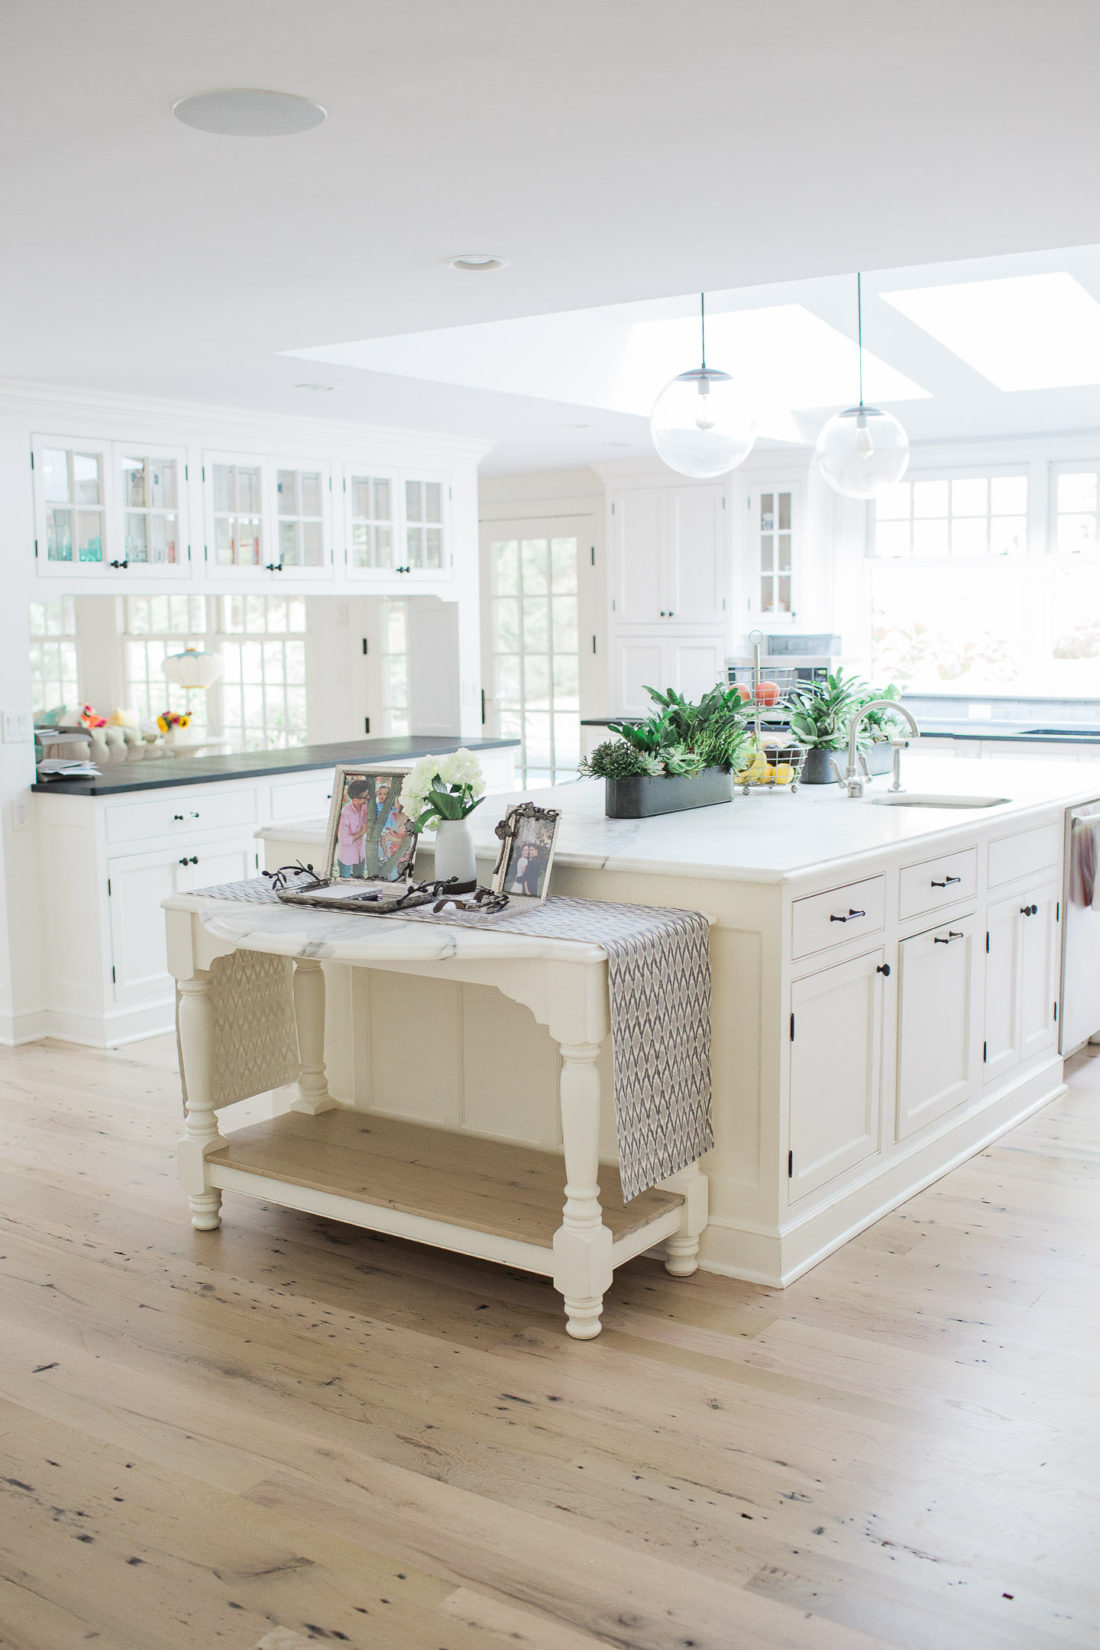 An entrance view of lifestyle blogger Eva Amurri Martino's white and bright kitchen in connecticut, featuring a huge marble island, skylights, and views of the pool and yard